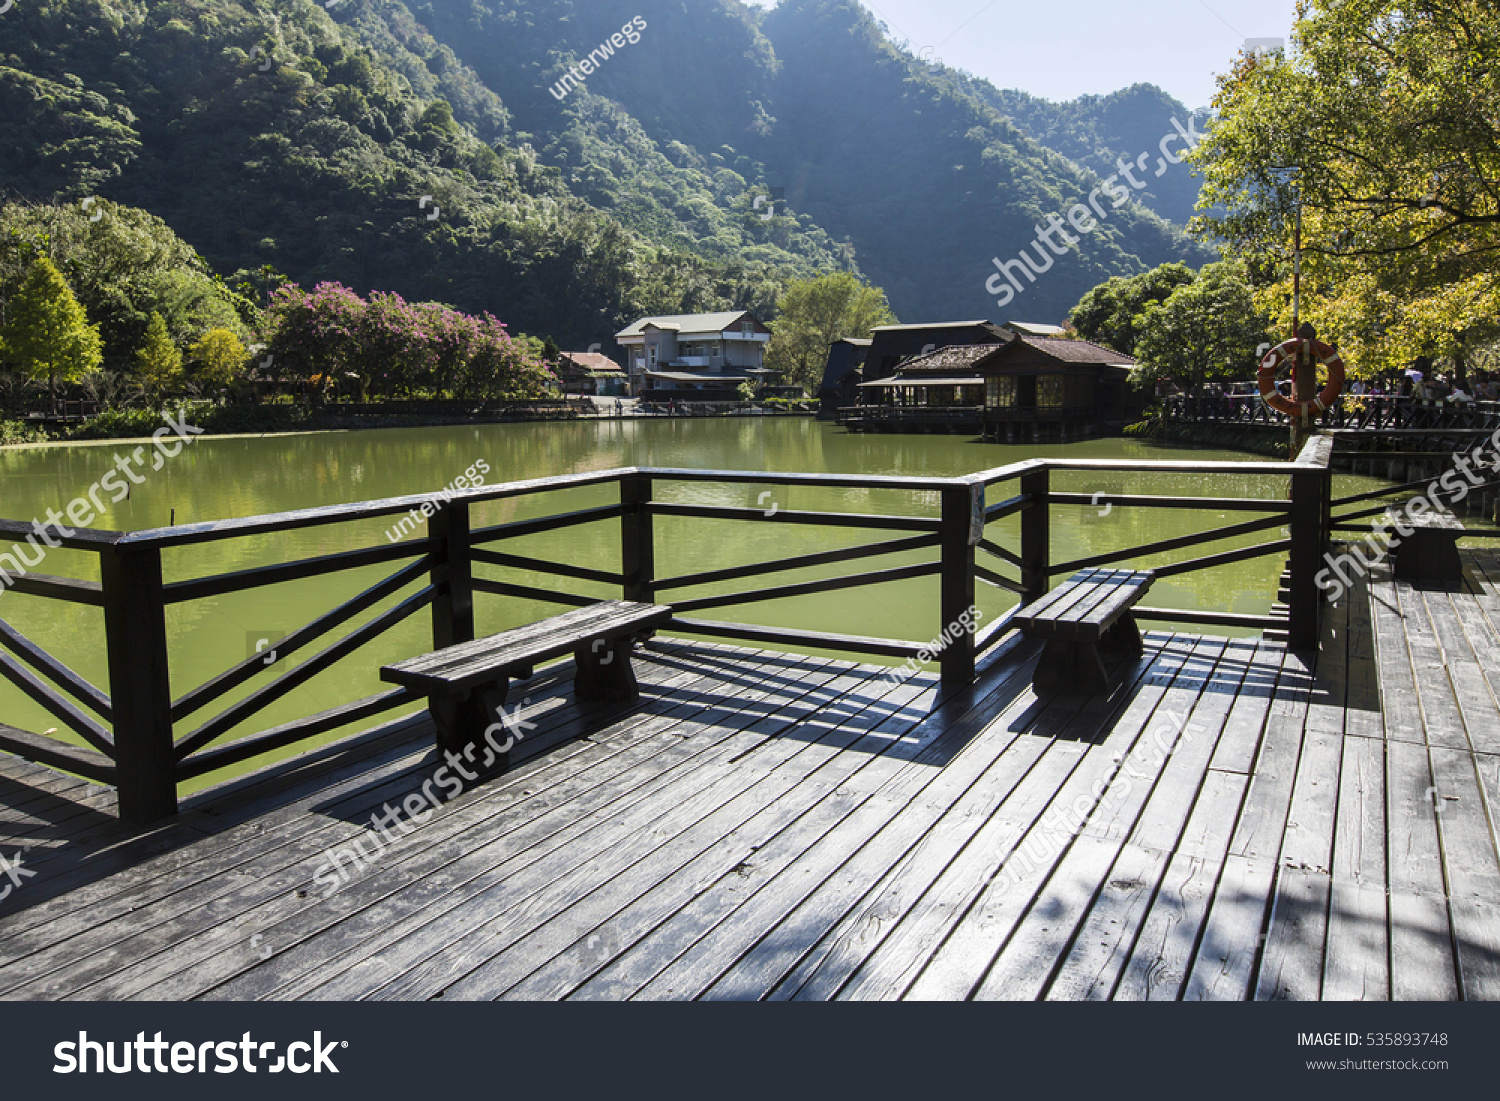 wooden benches at a lake #535893748